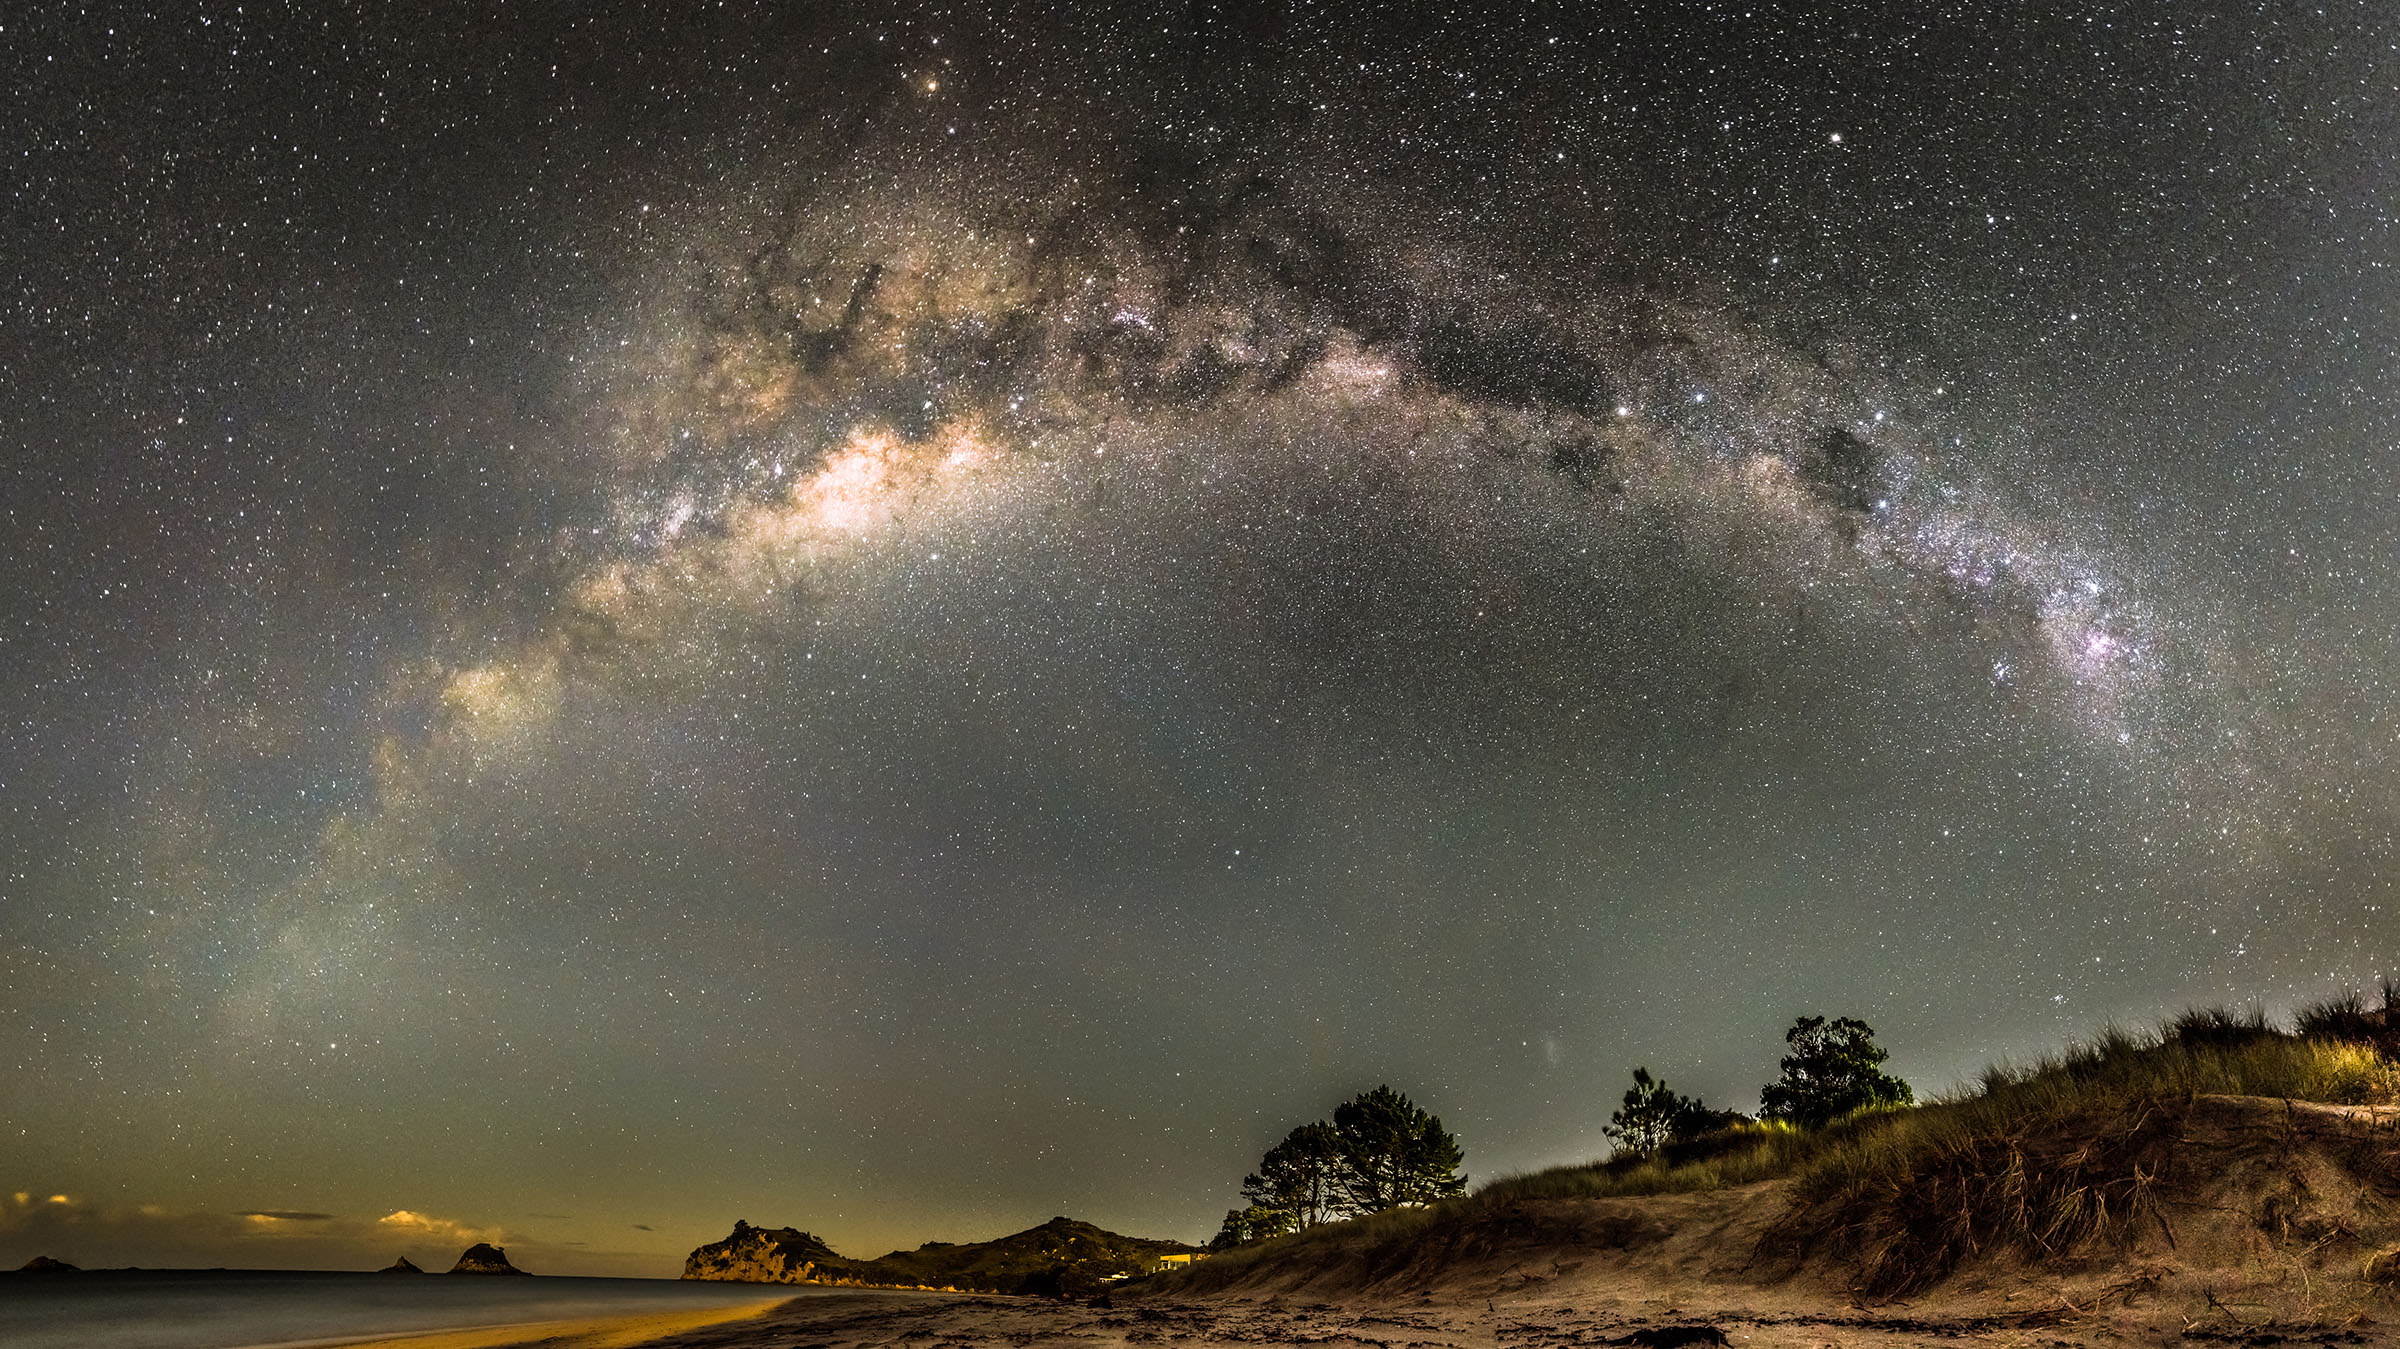 The Milky Way by Tom Hall (CC2 license)